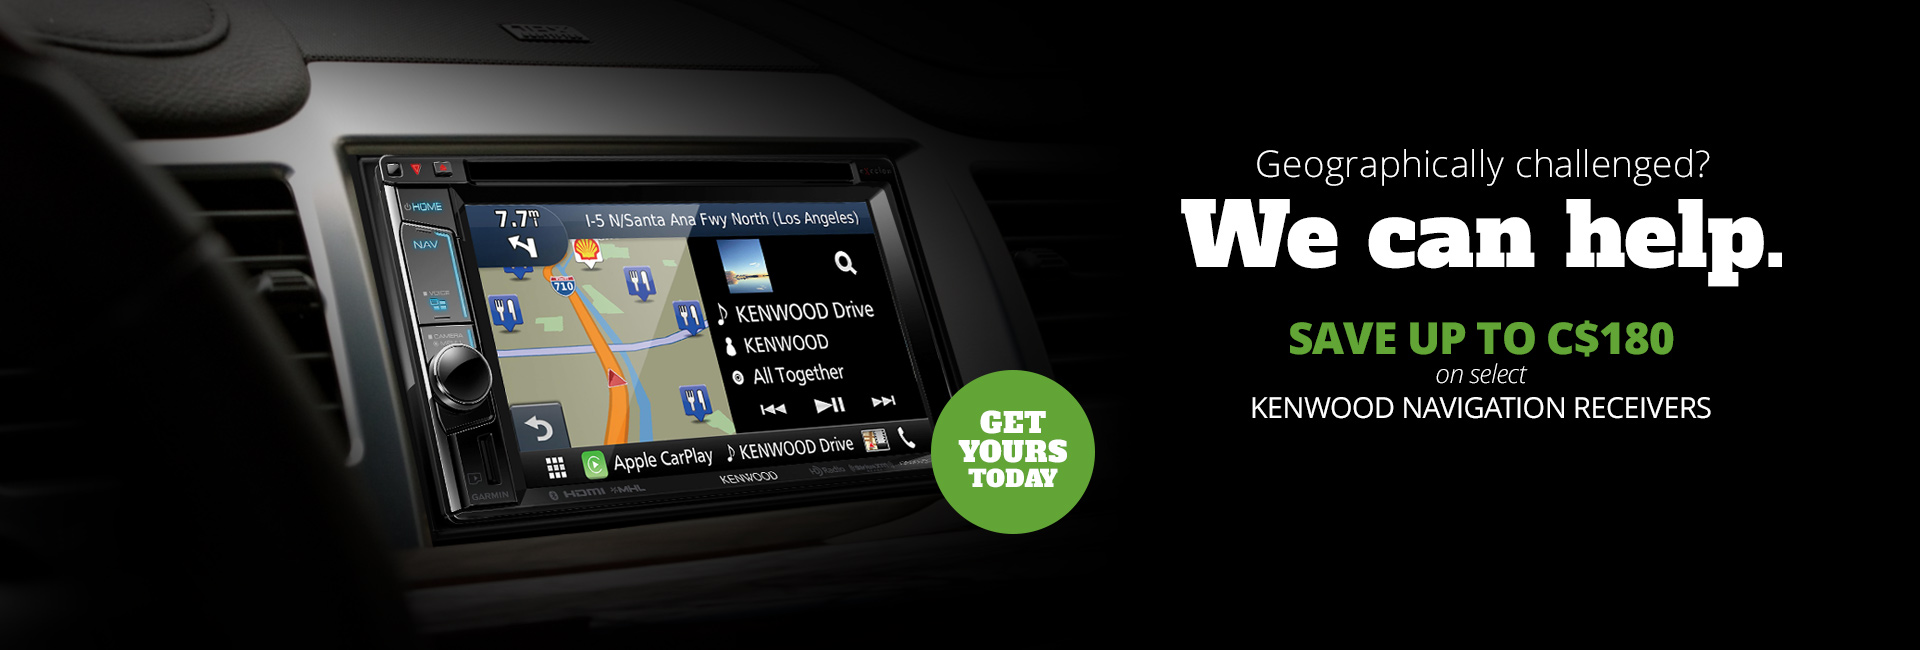 Save up to C$180 on a select Kenwood navigation receivers